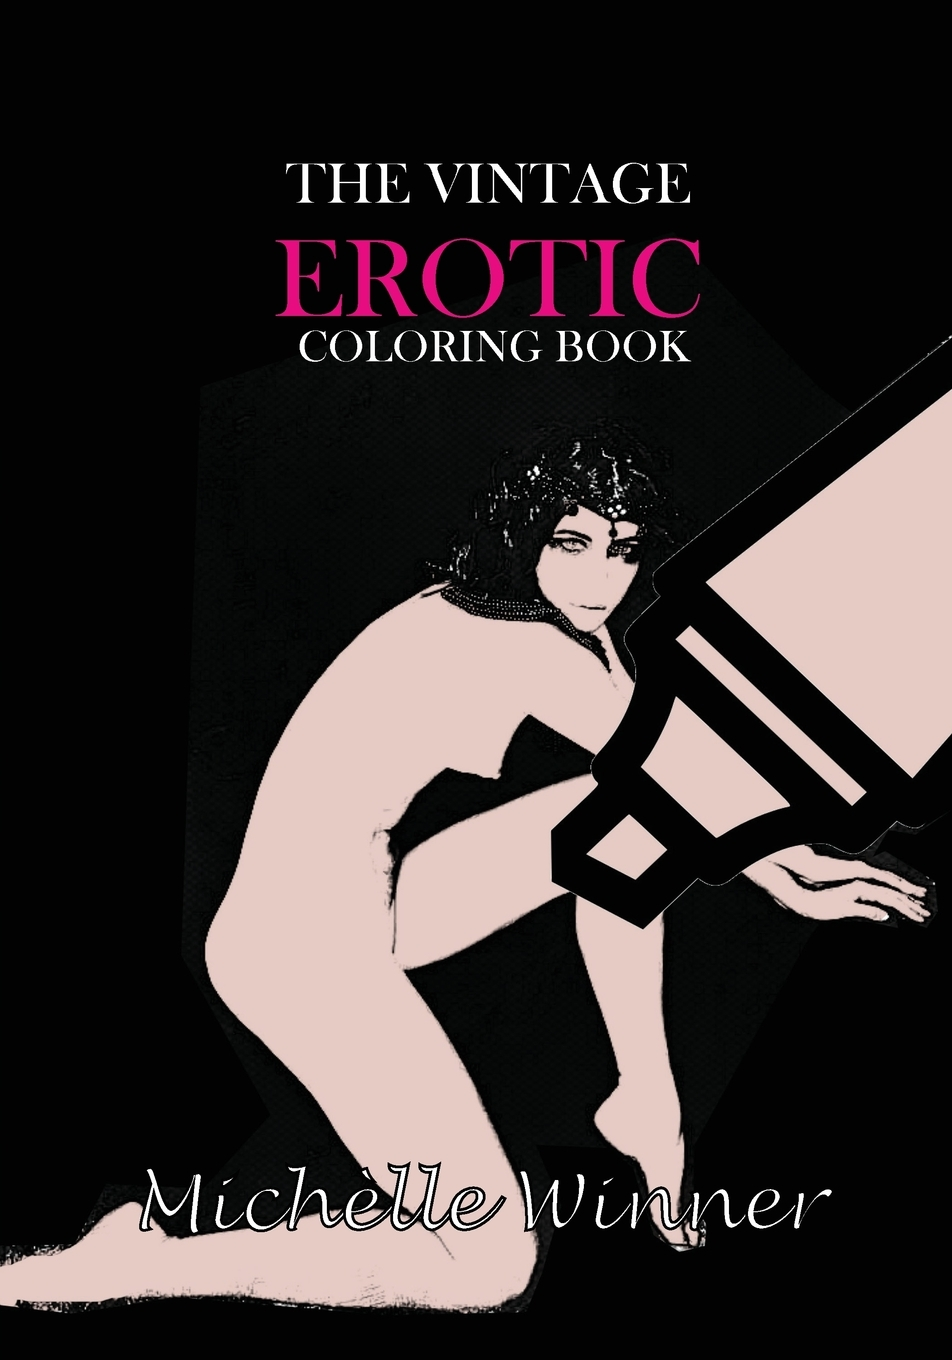 The Vintage Erotic Coloring Book - Walmart.com